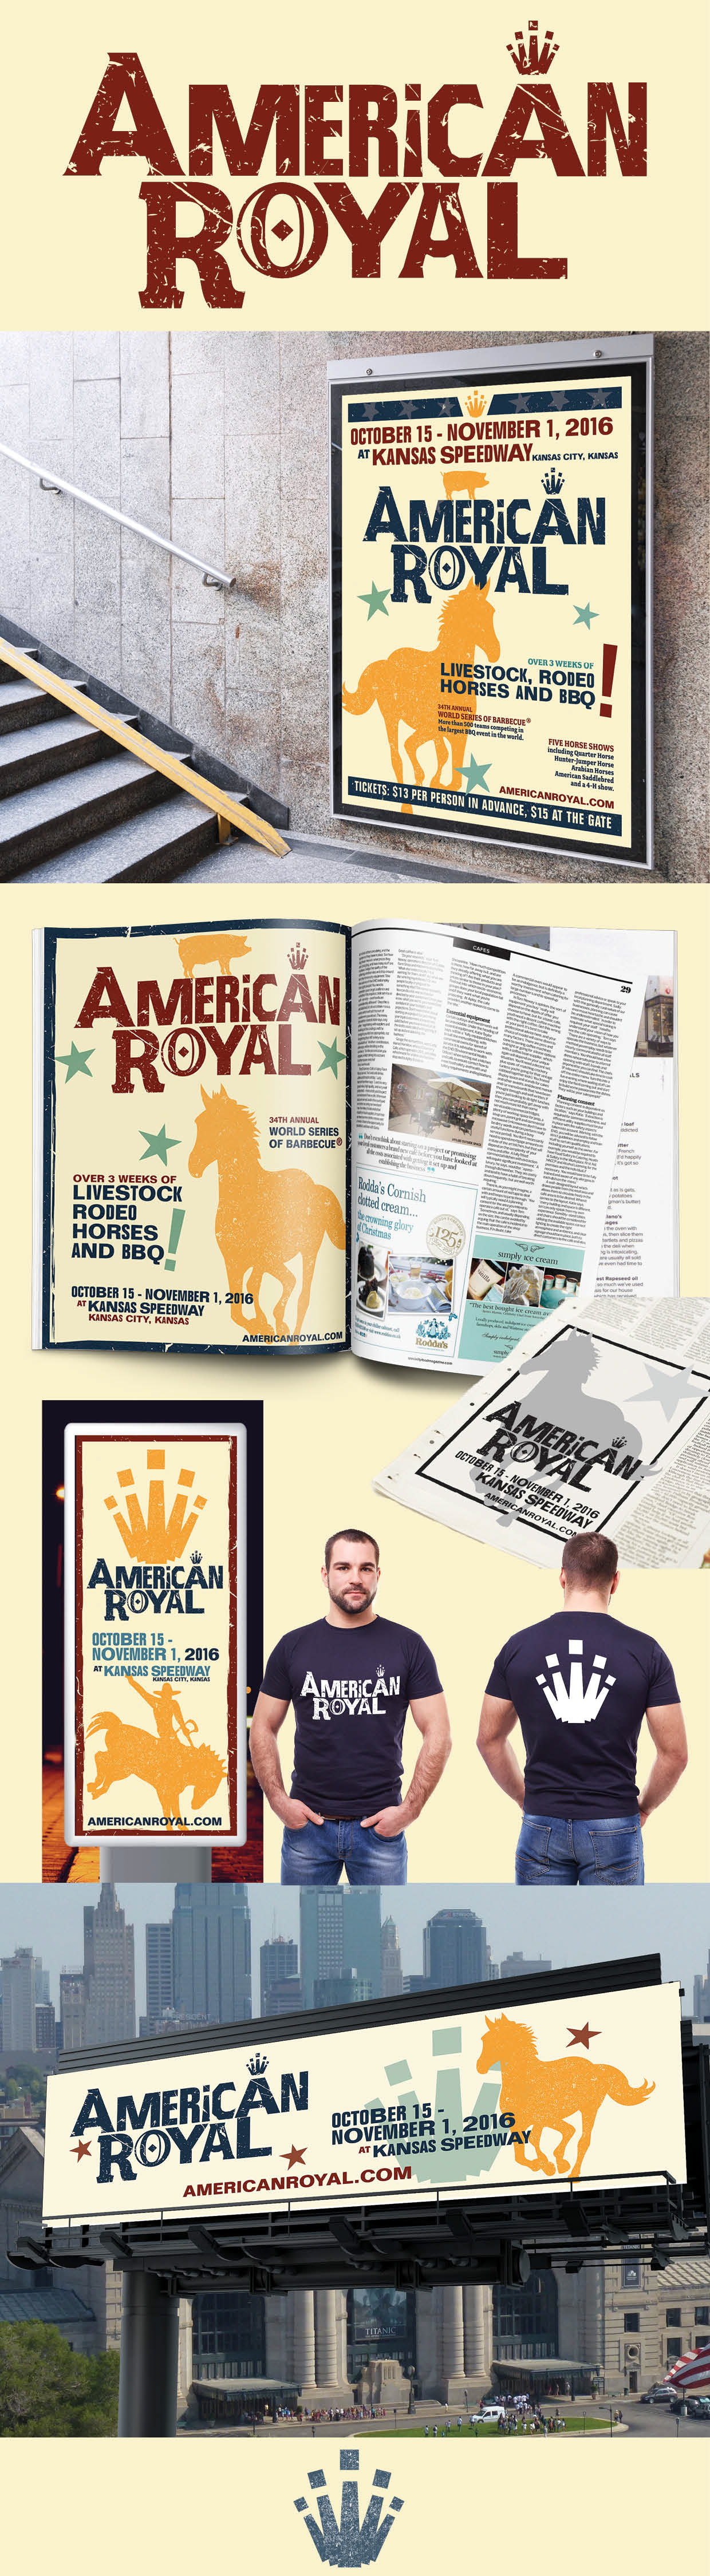 andrew hergert american royal ad campaign